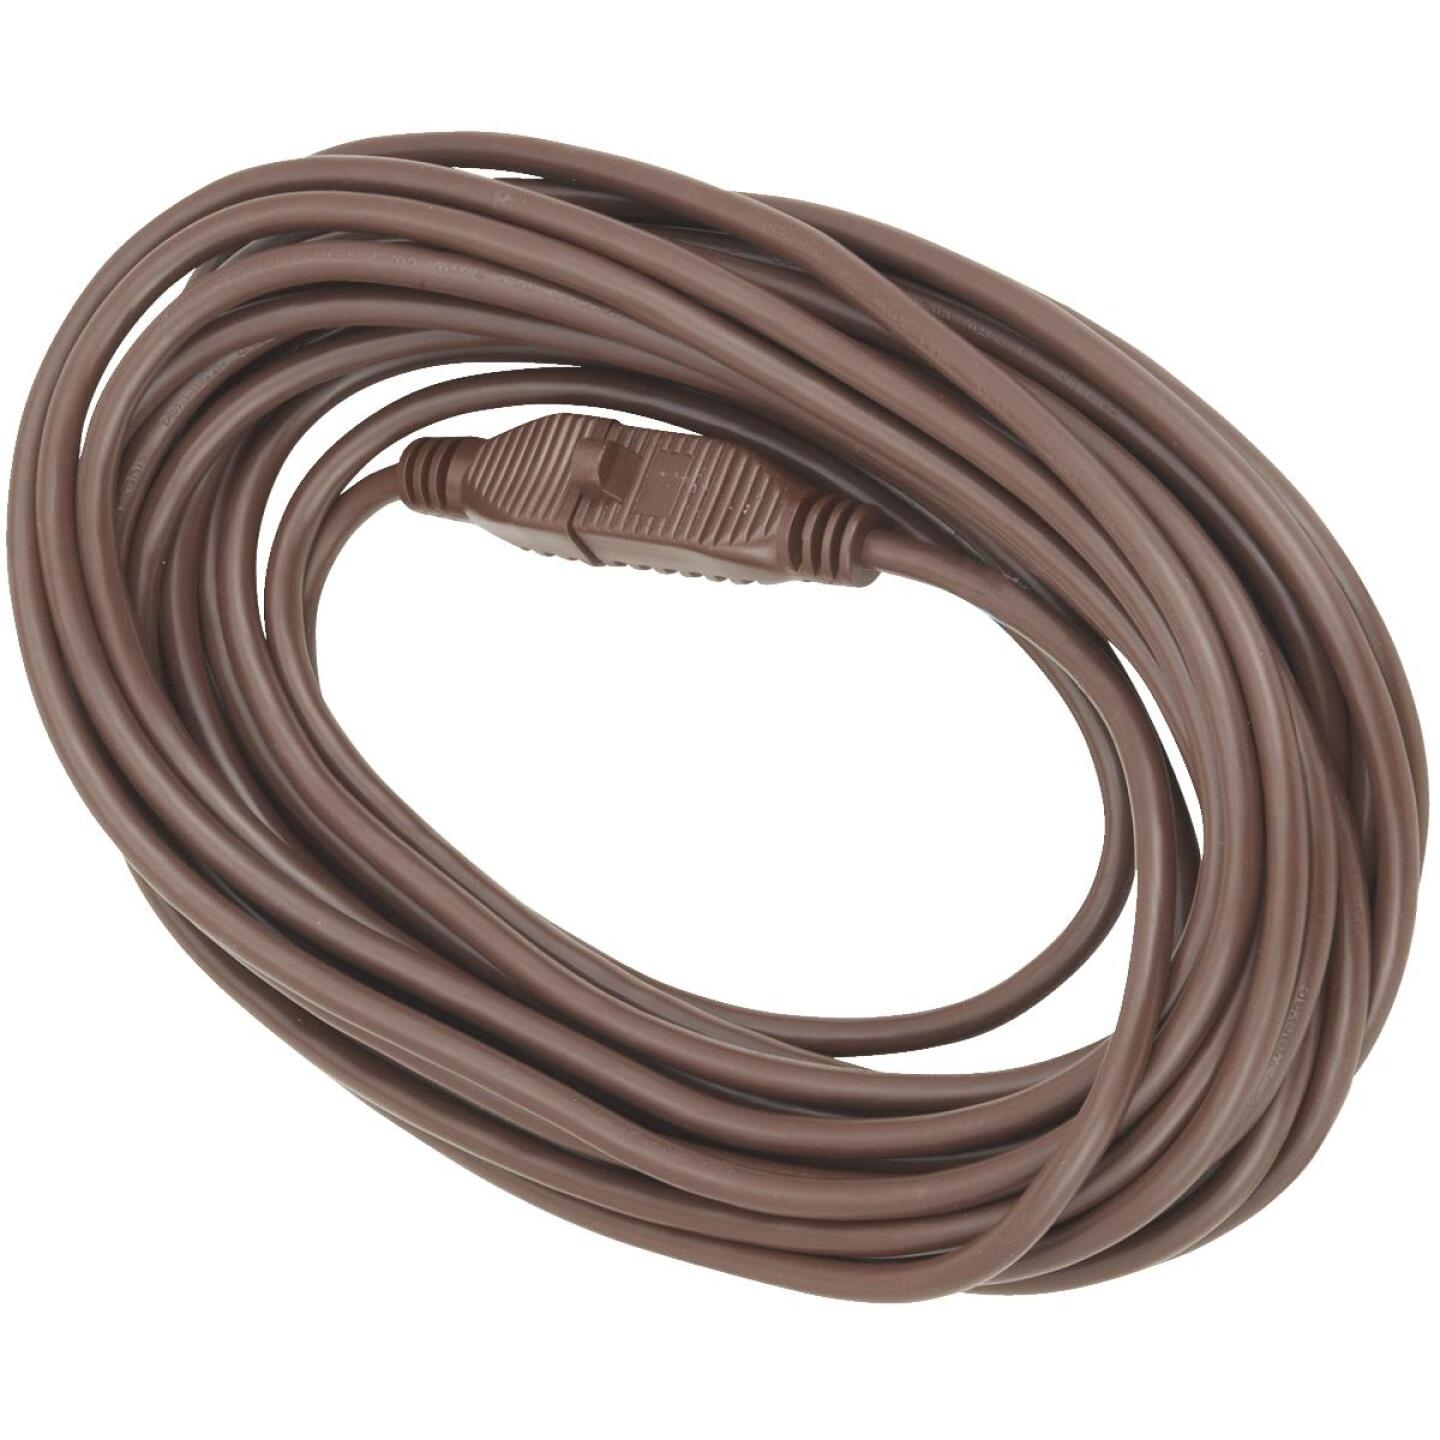 Do it 40 Ft. 16/3 Medium-Duty Brown Patio Extension Cord Image 1